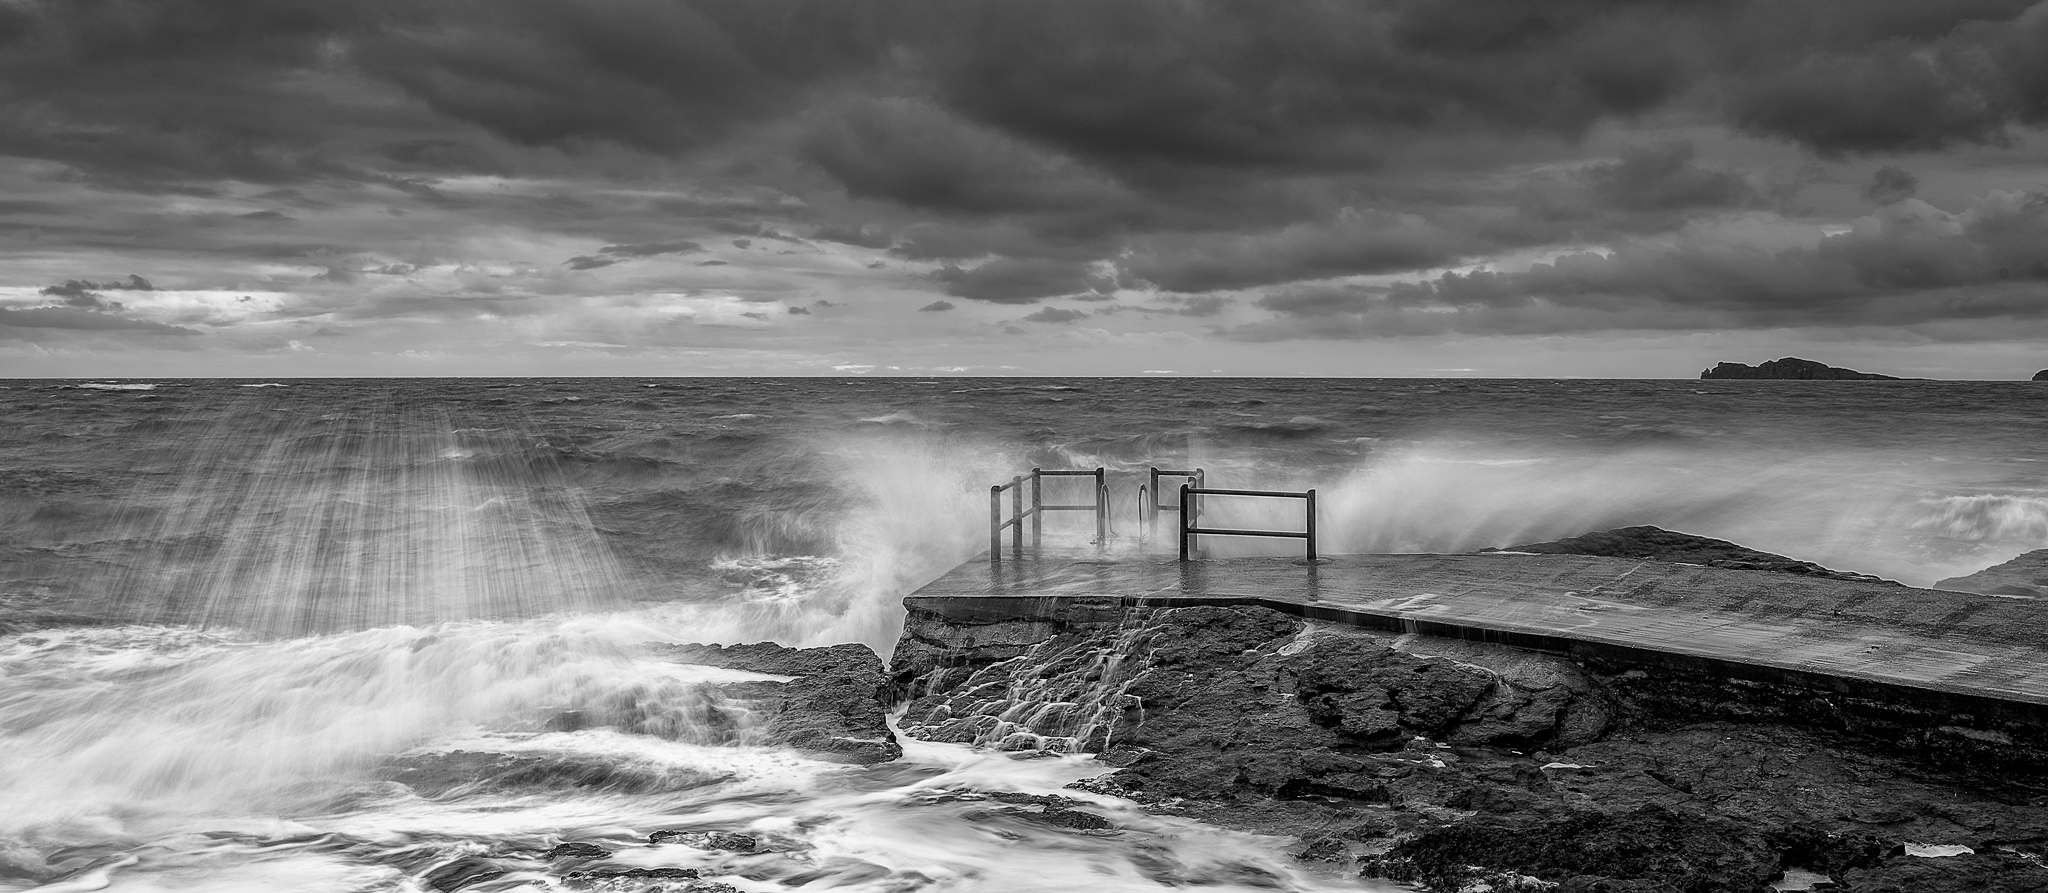 donabate-stormy-sunrise-seascape-ireland-dublin-photography-workshop